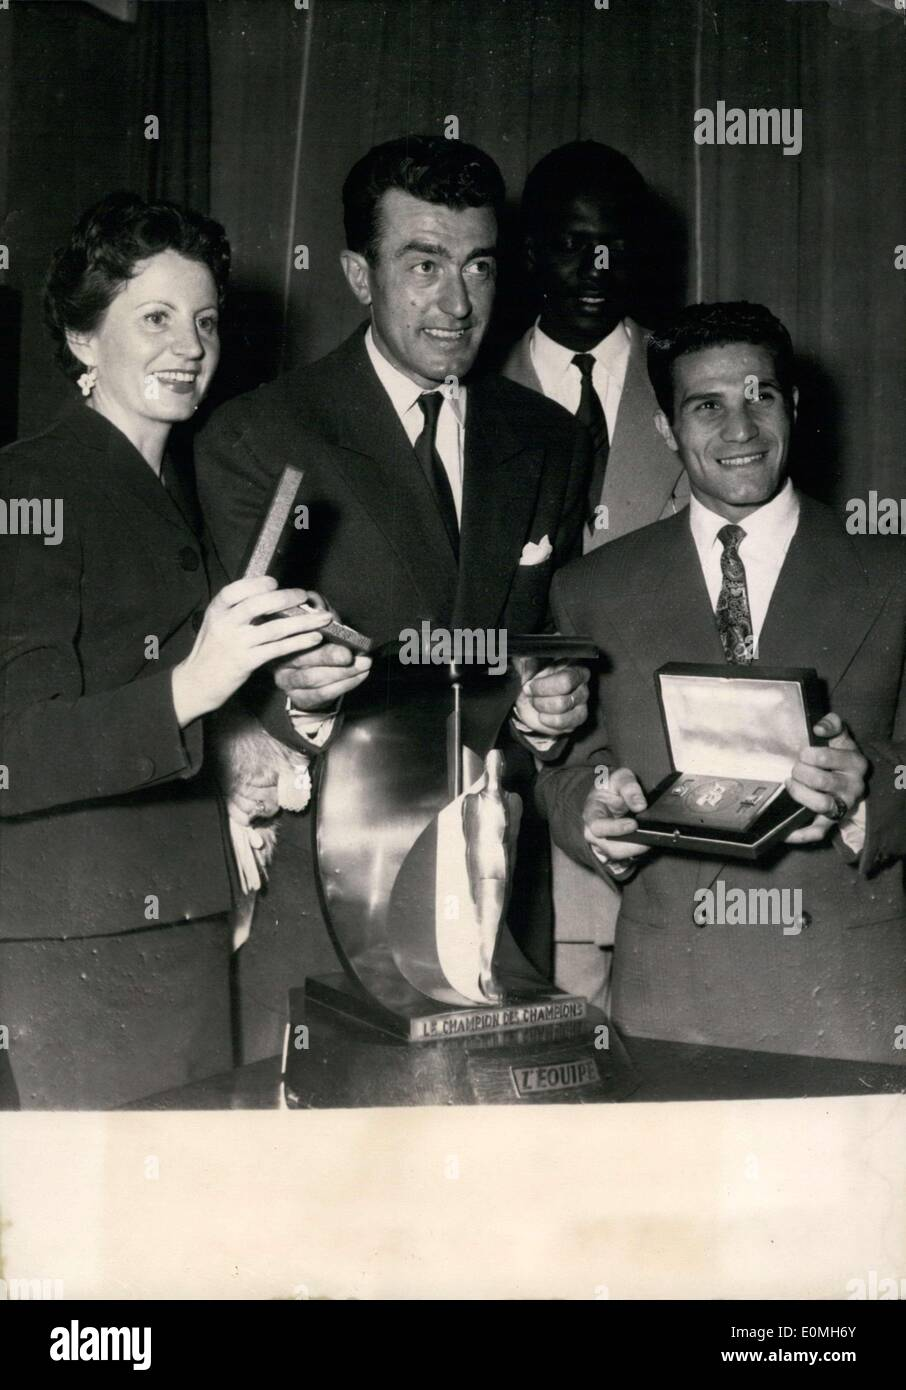 May 11, 1955 - ''The Champion of Champions'' title was given to cyclist Louison Bobet during a reception held in his honor. Bobet (center) is pictured here right after he received the trophy with his wife (left) and Robert Cohen (right). Thiam Papa Gallo stands behind the group. - Stock Image